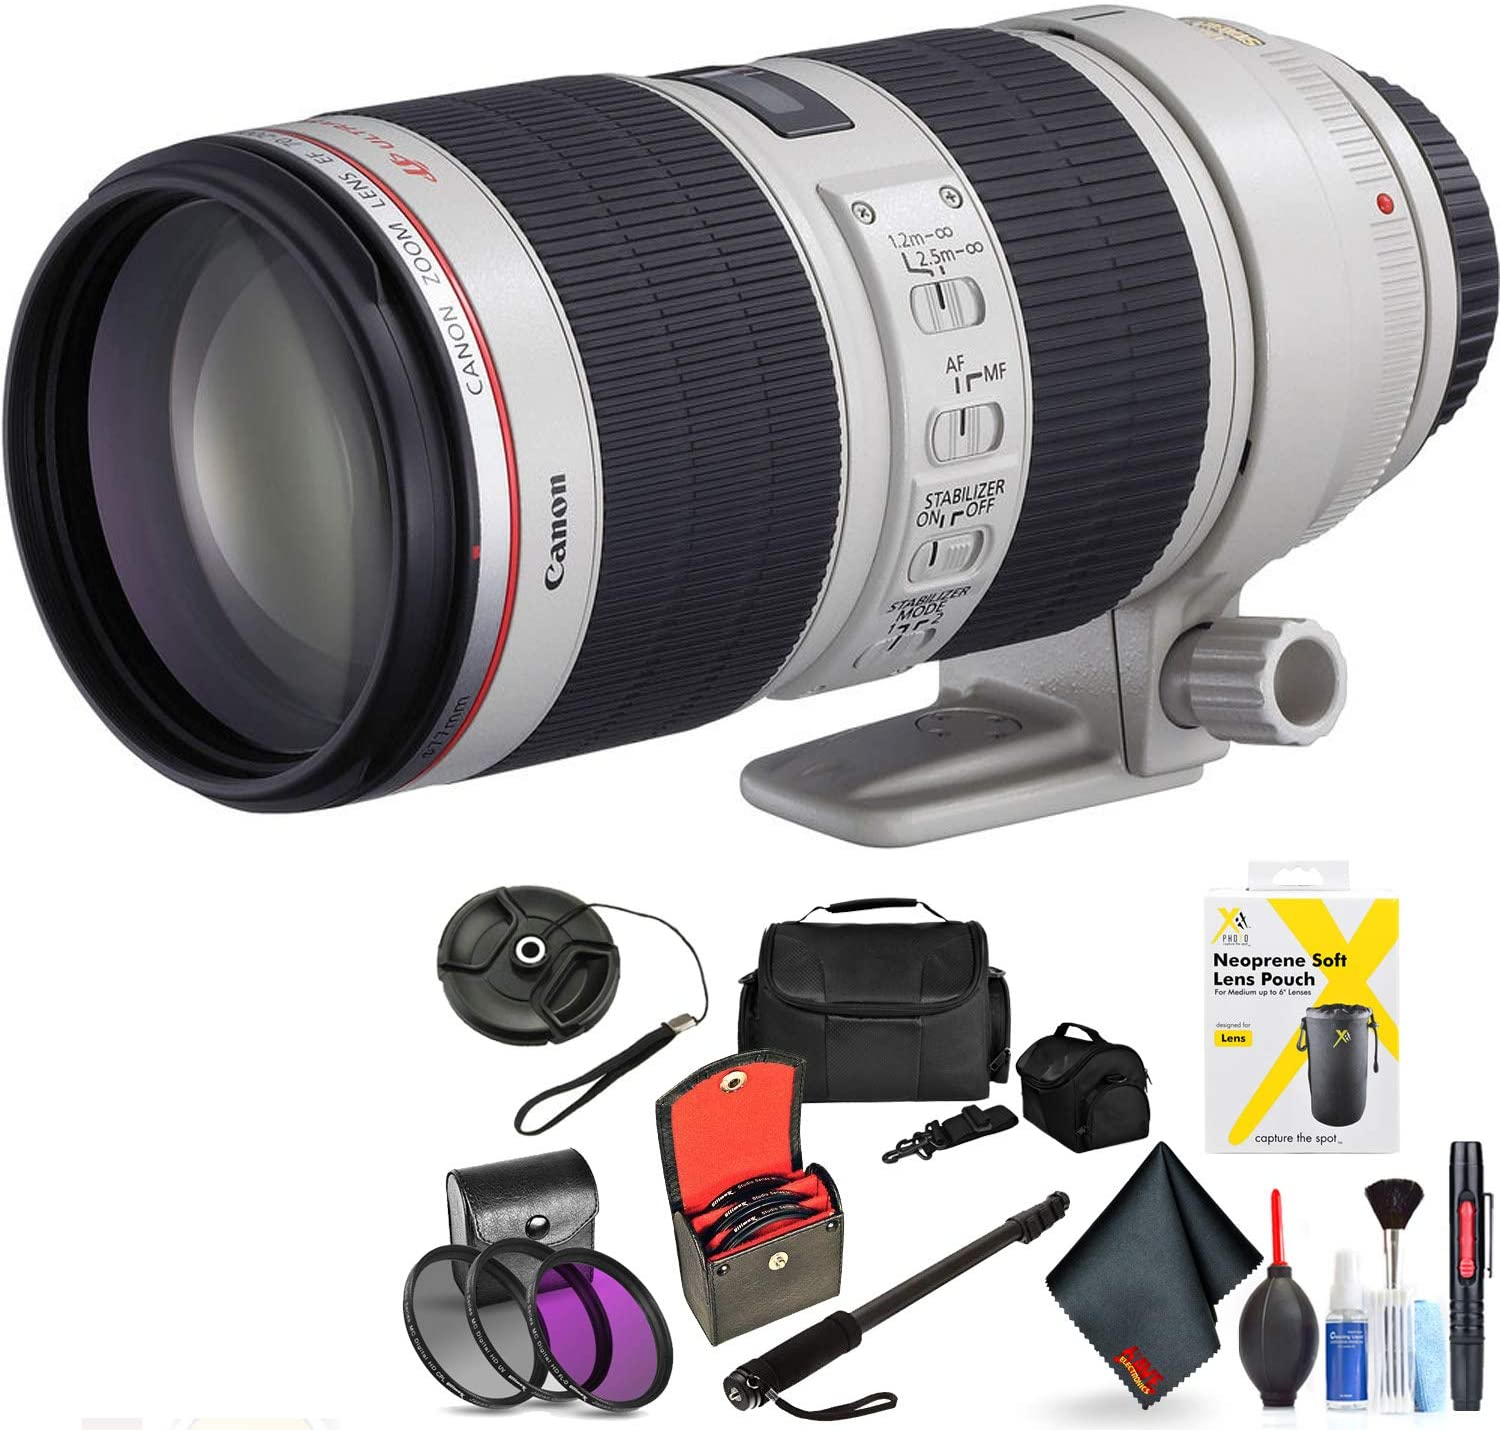 Canon EF 70-200mm F/2.8L is Ii USM Lens for Canon 6D, 5D Mark IV, 5D Mark III, 5D Mark II, 6D Mark II, 5Dsr, 5Ds, 1Dx, 1